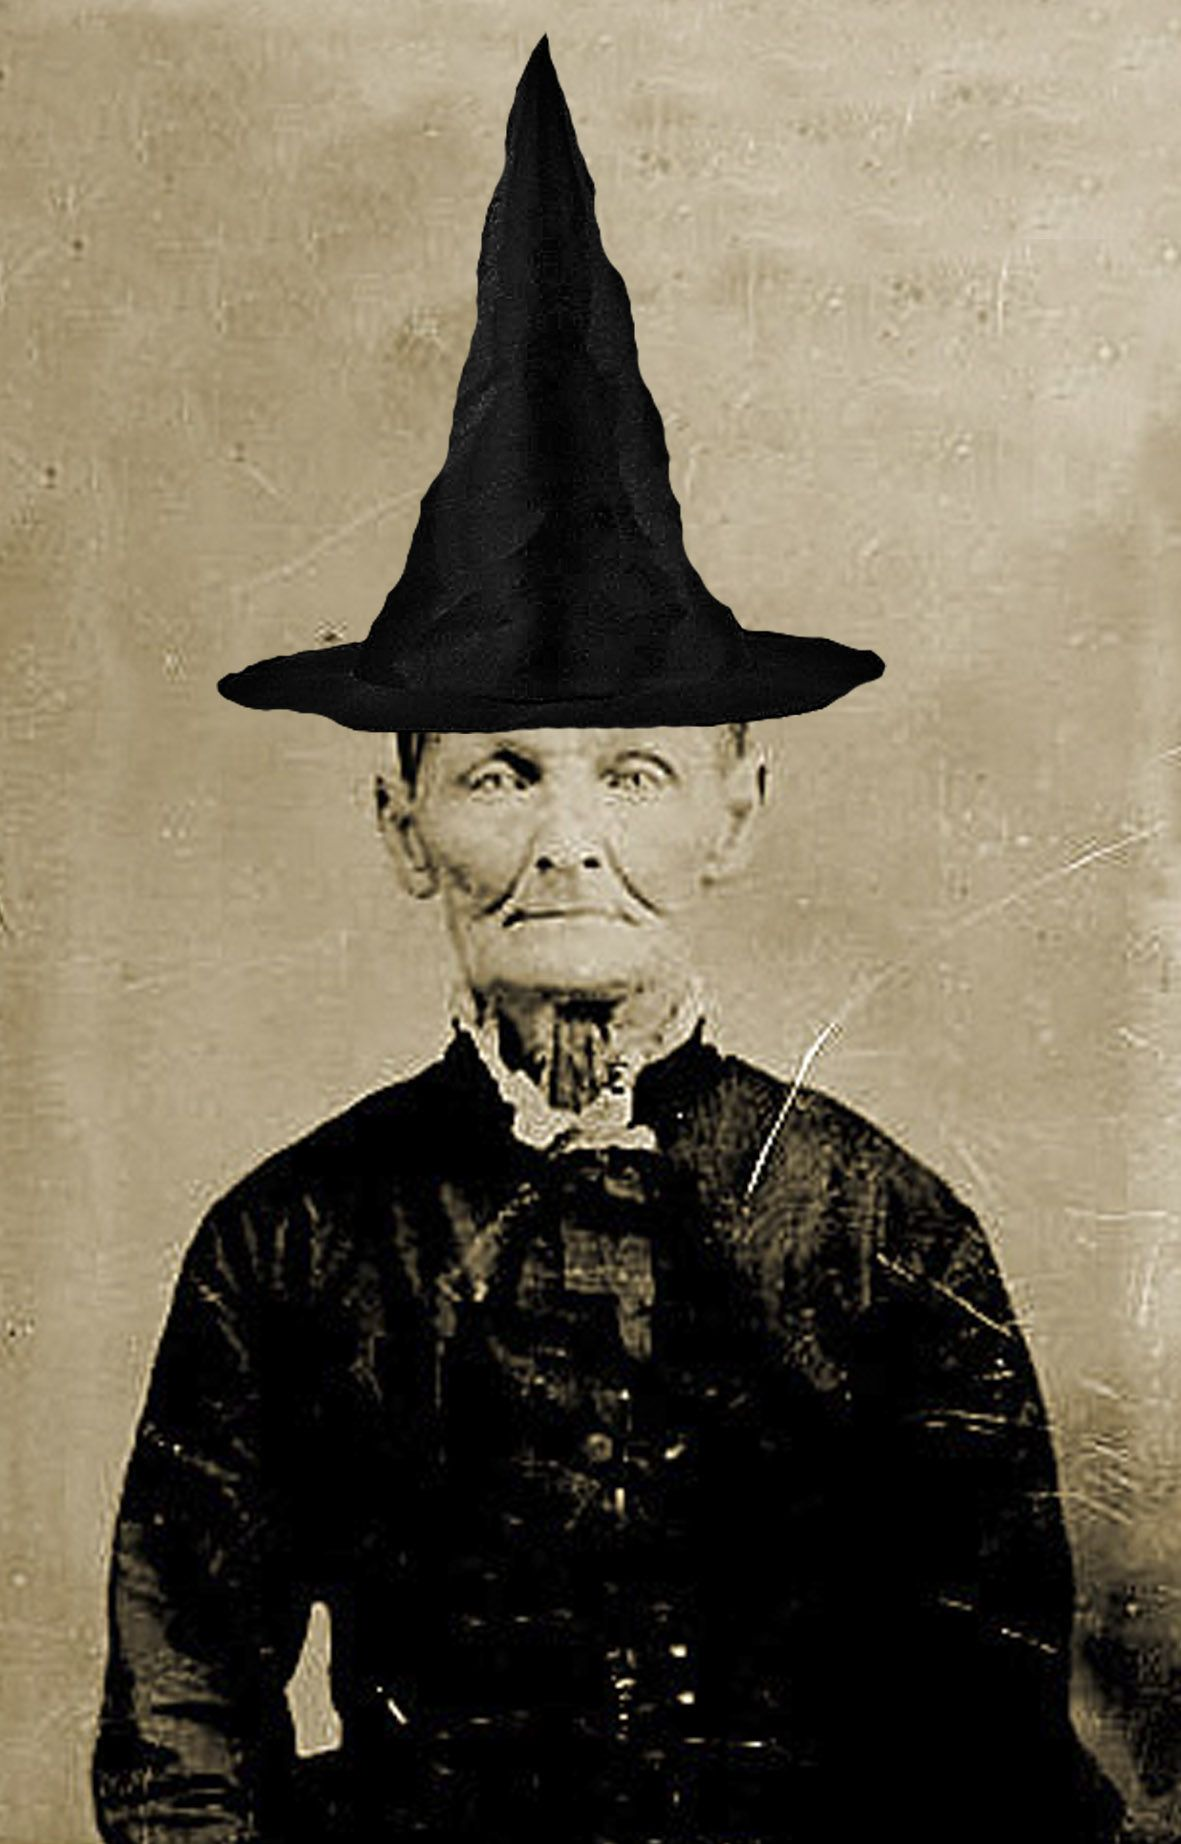 halloween photos old witch more - Vintage Halloween Witches